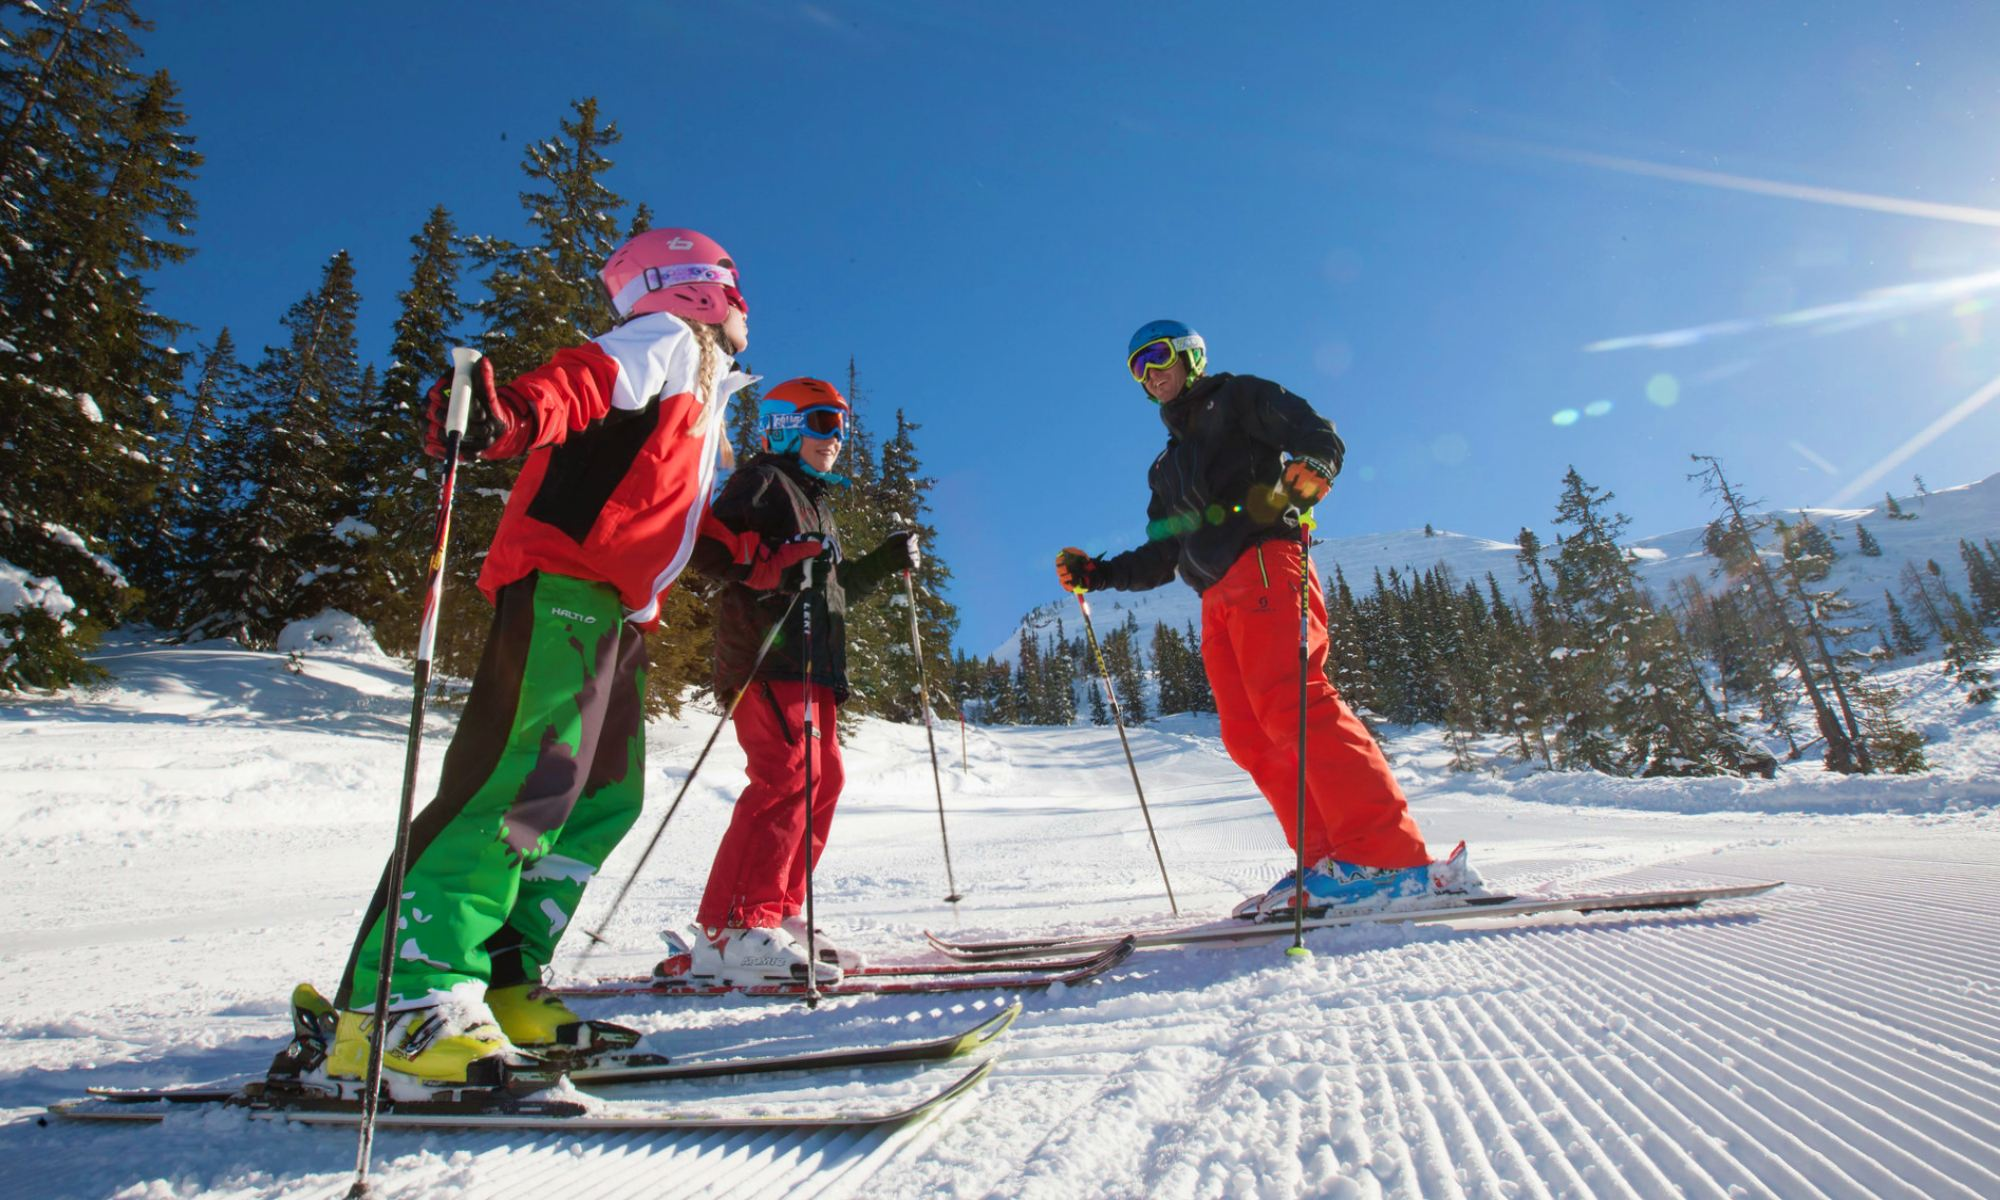 An instructor plus two skiers on the slopes.